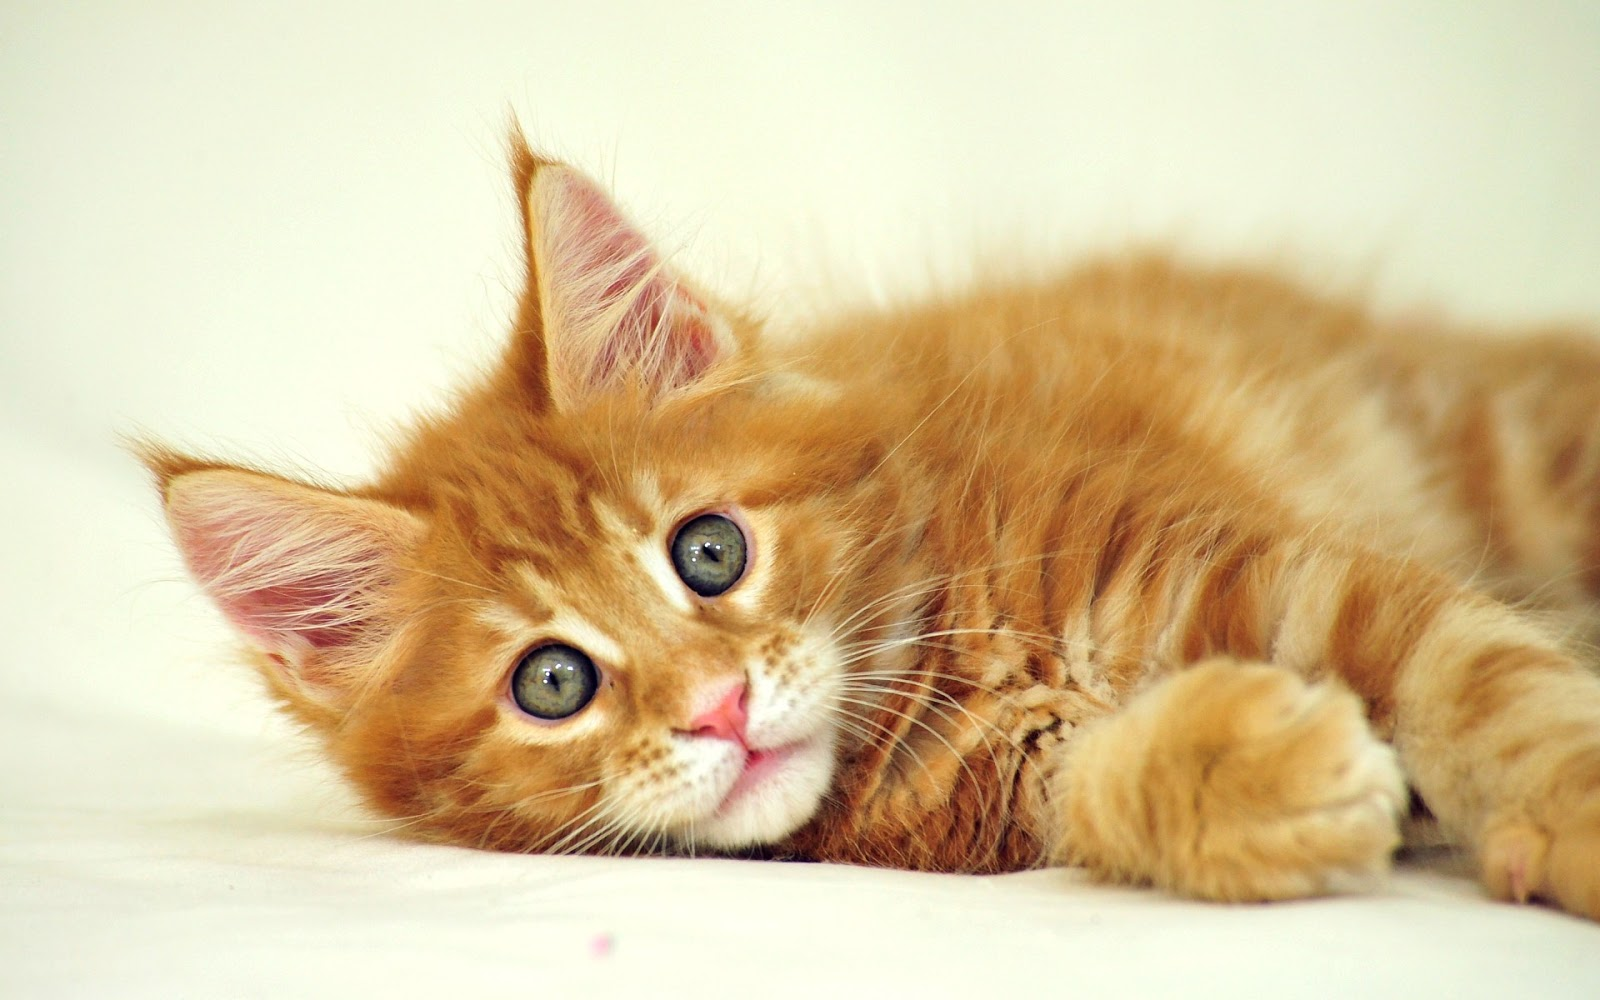 Cute-Cat-HD-Wallpaper.jpg